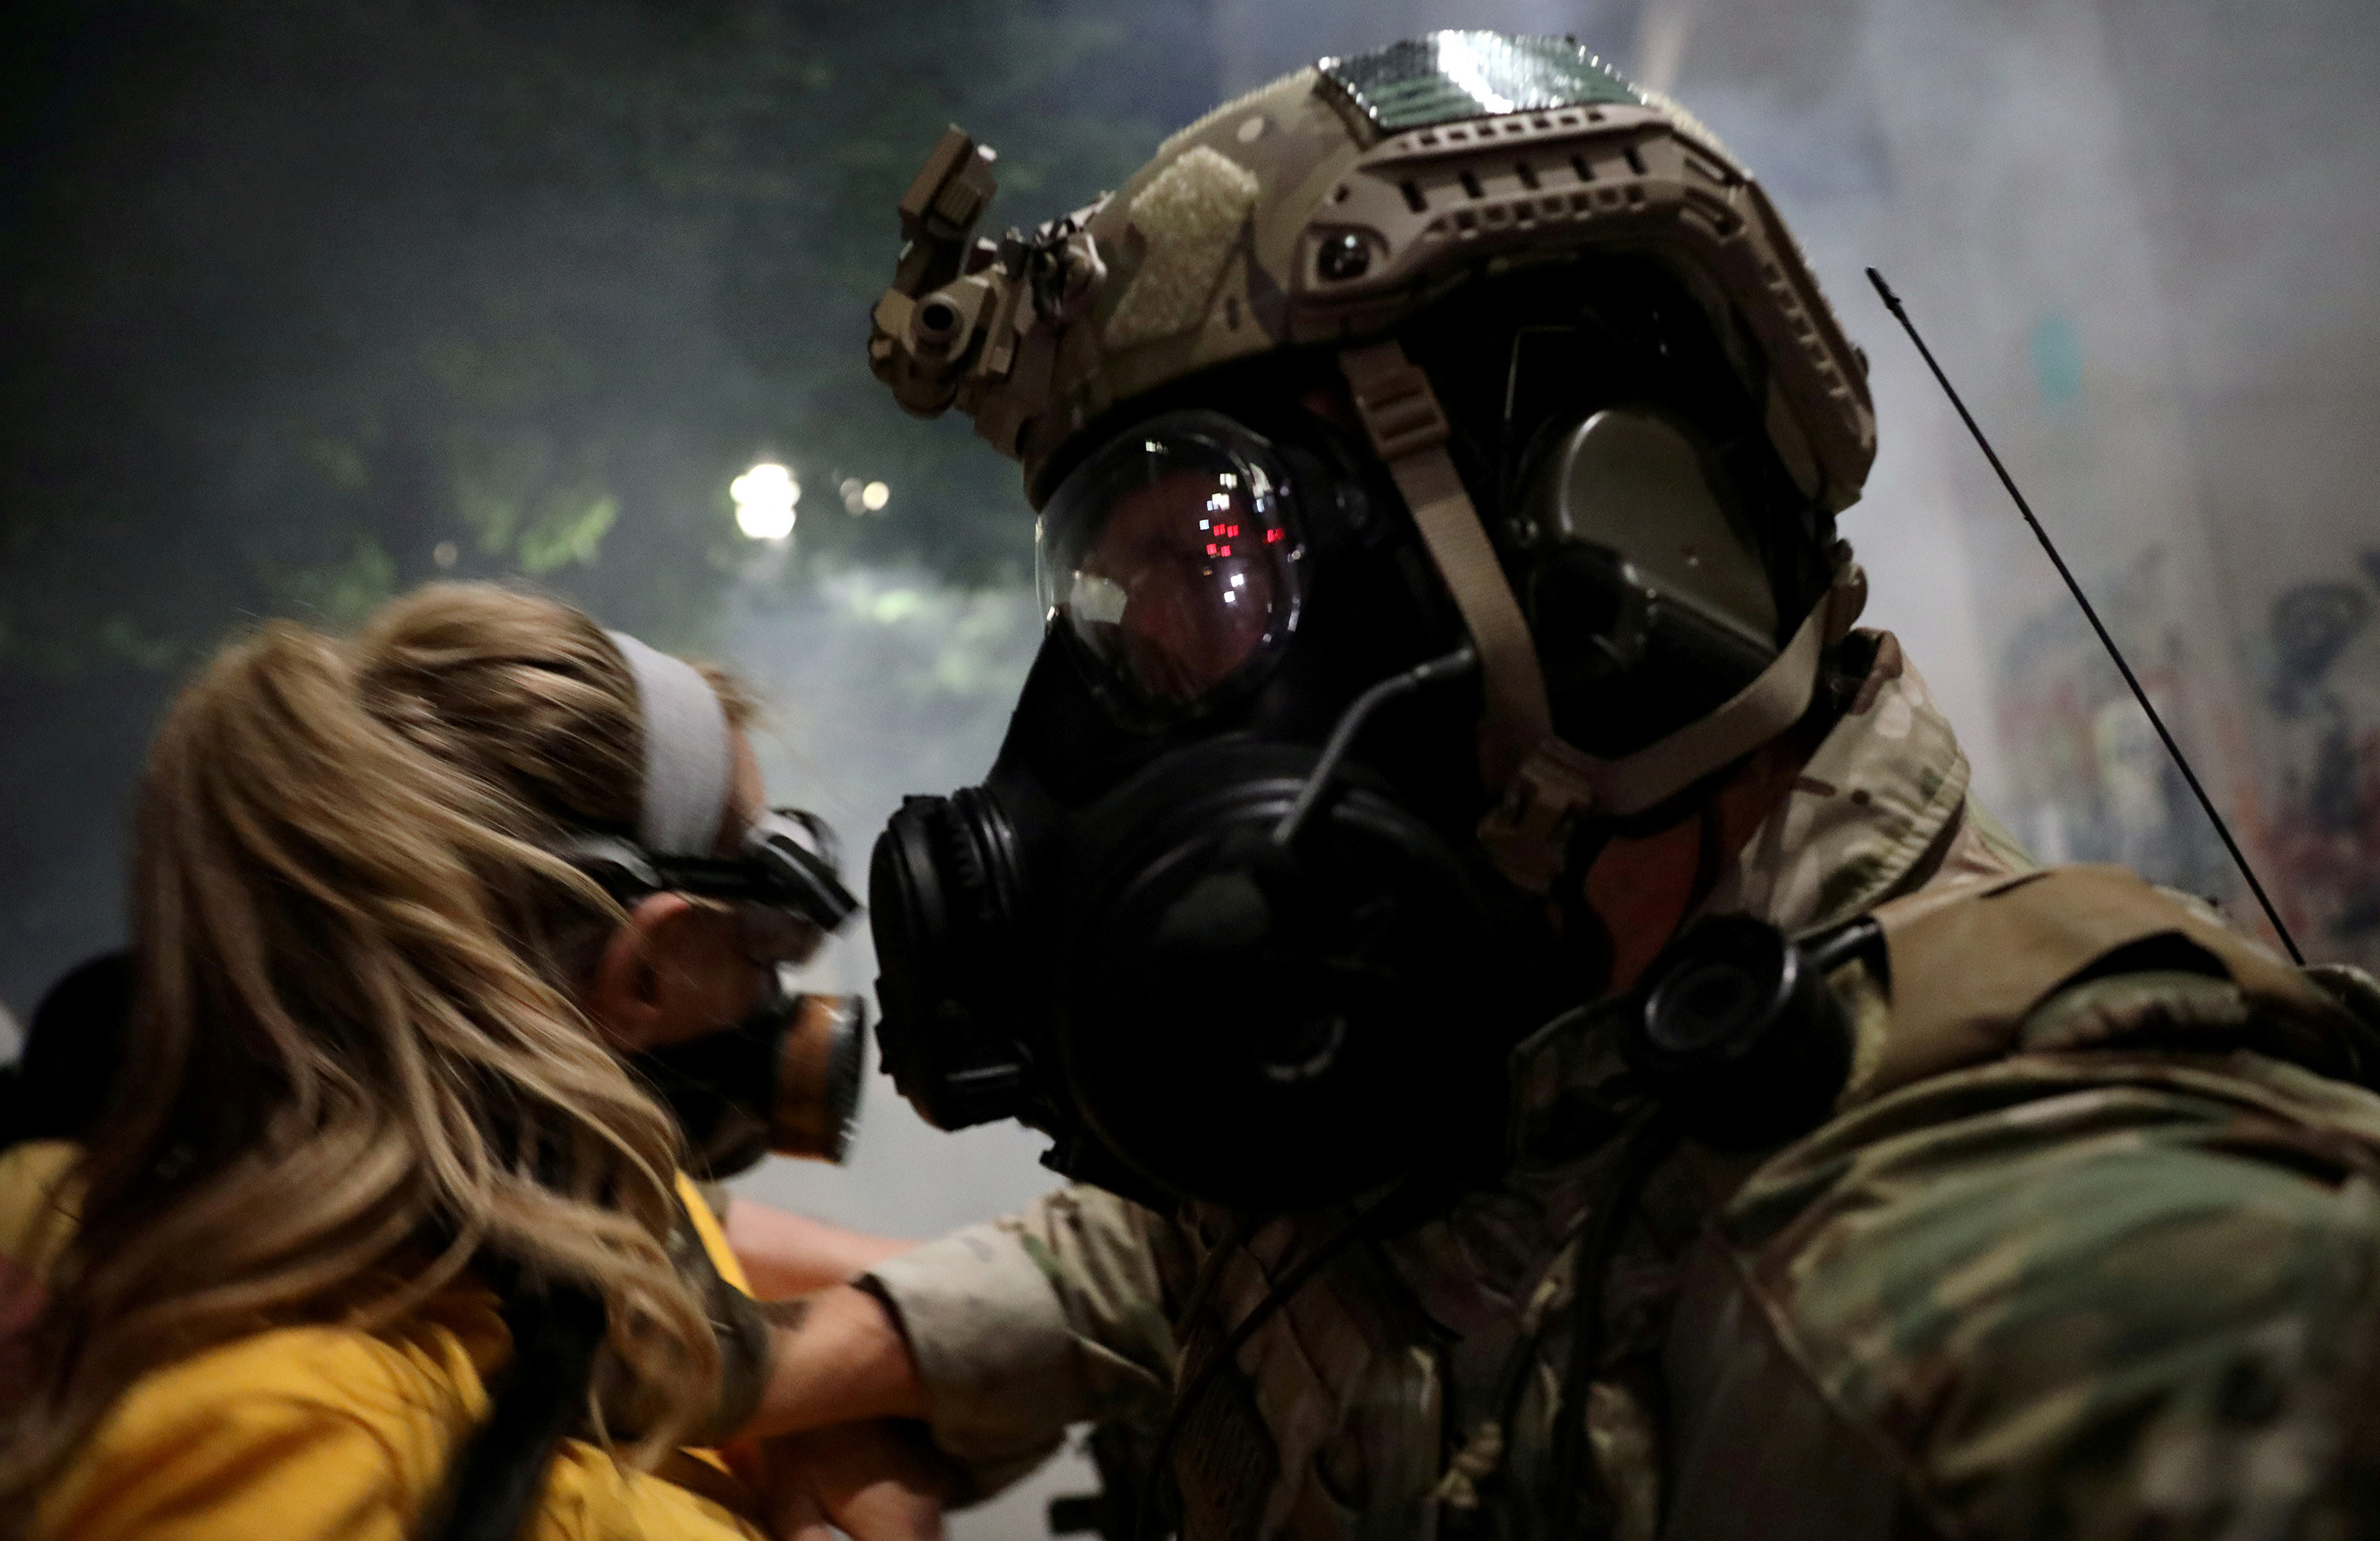 A woman in a yellow shirt and face mask faces off with a federal law enforcement officer, who pushes her back